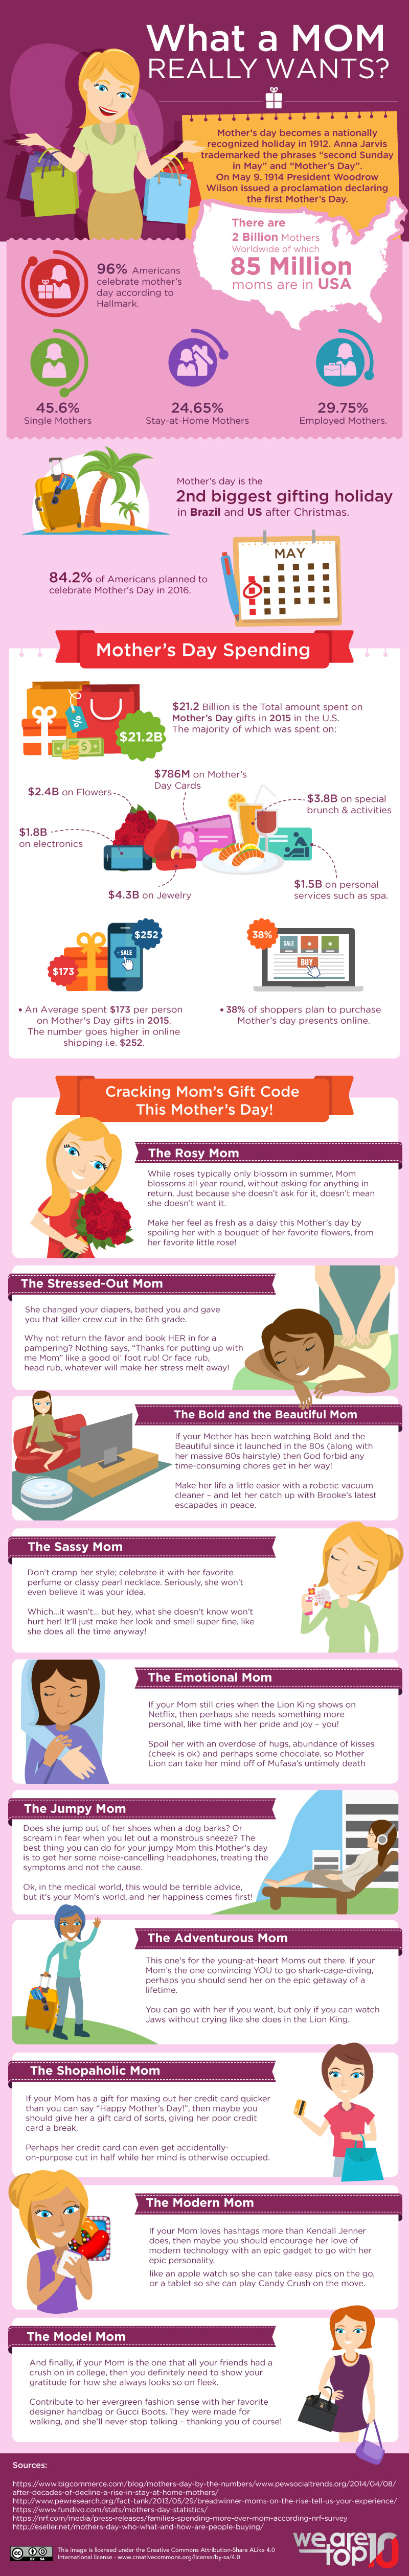 What a mom really wants on Mother's Day